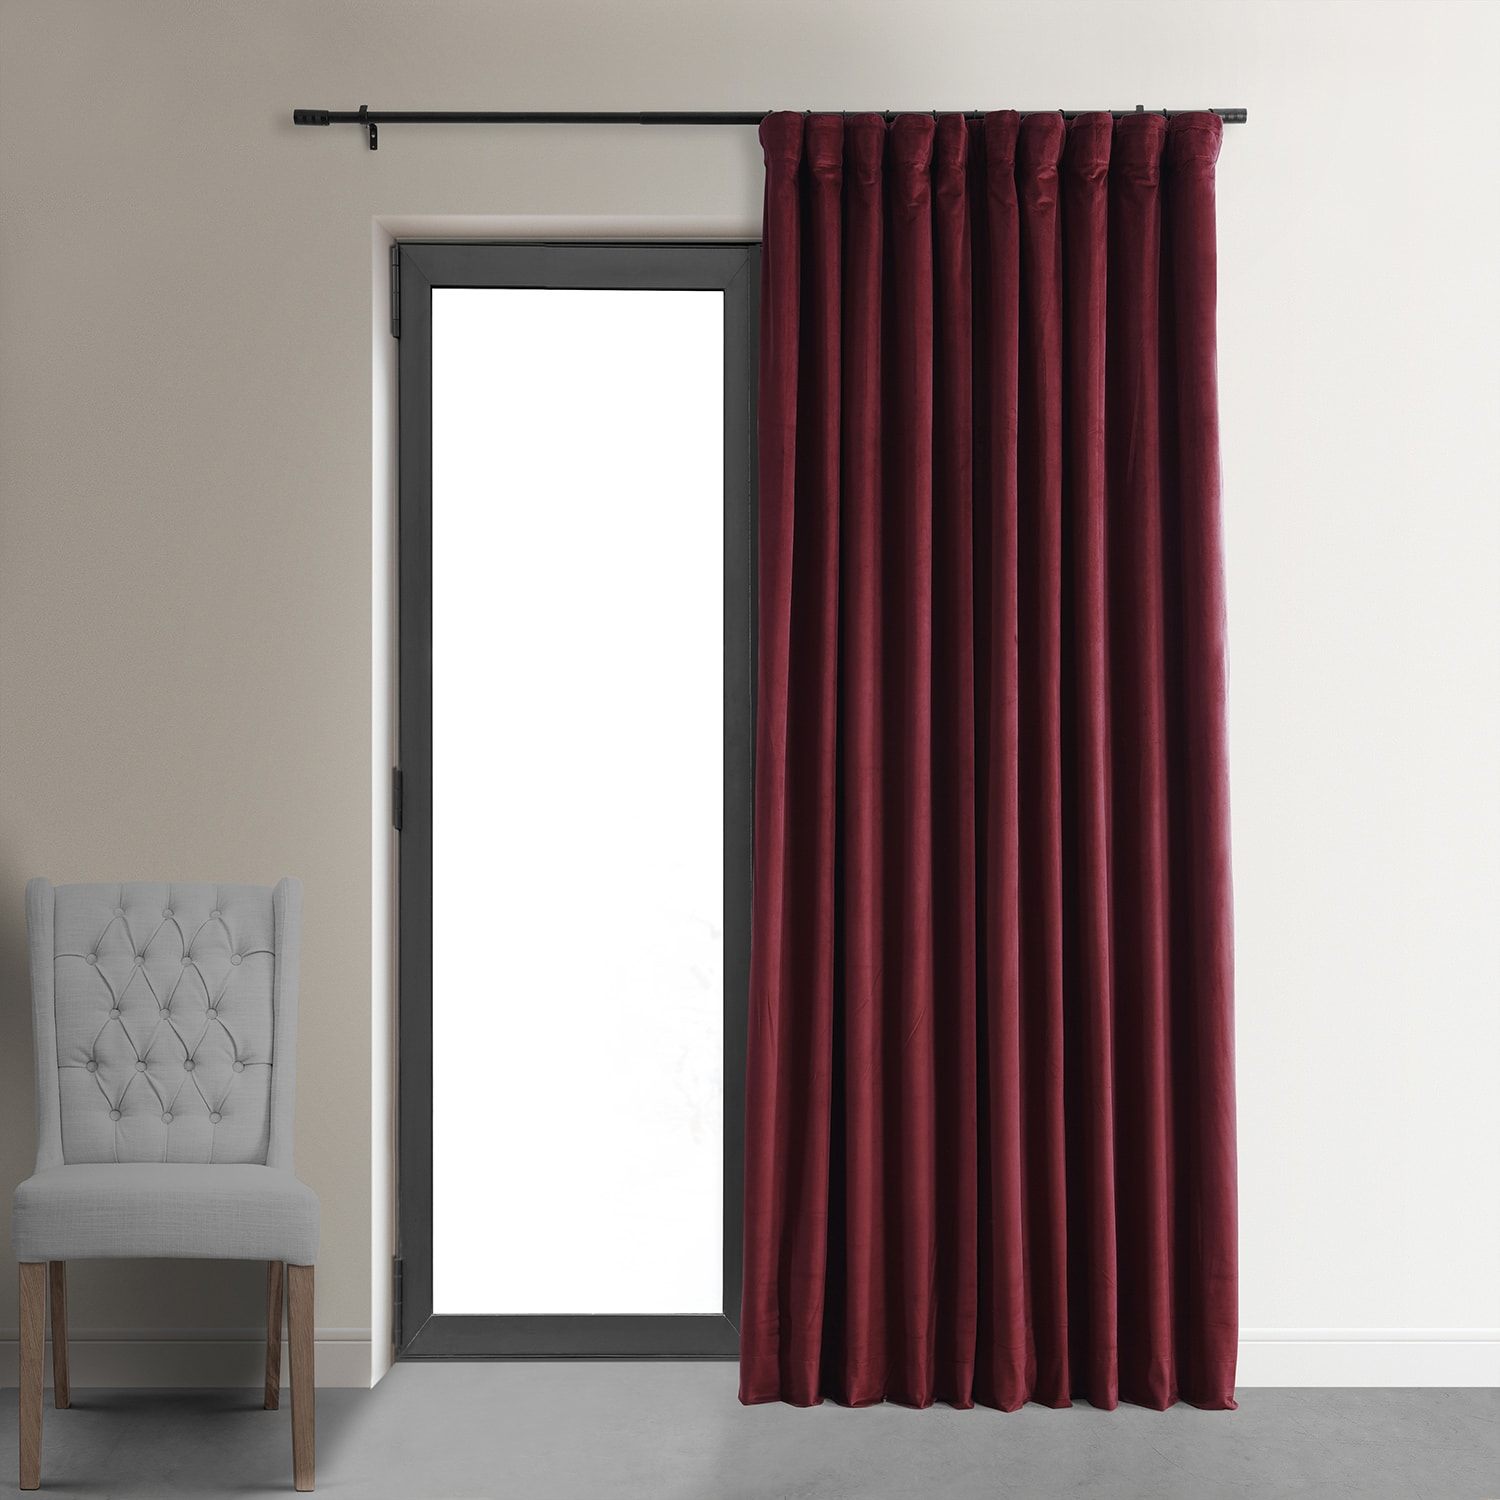 105 Inch Curtains Signature Burgundy Extra Wide Velvet Blackout Pole Pocket Curtain